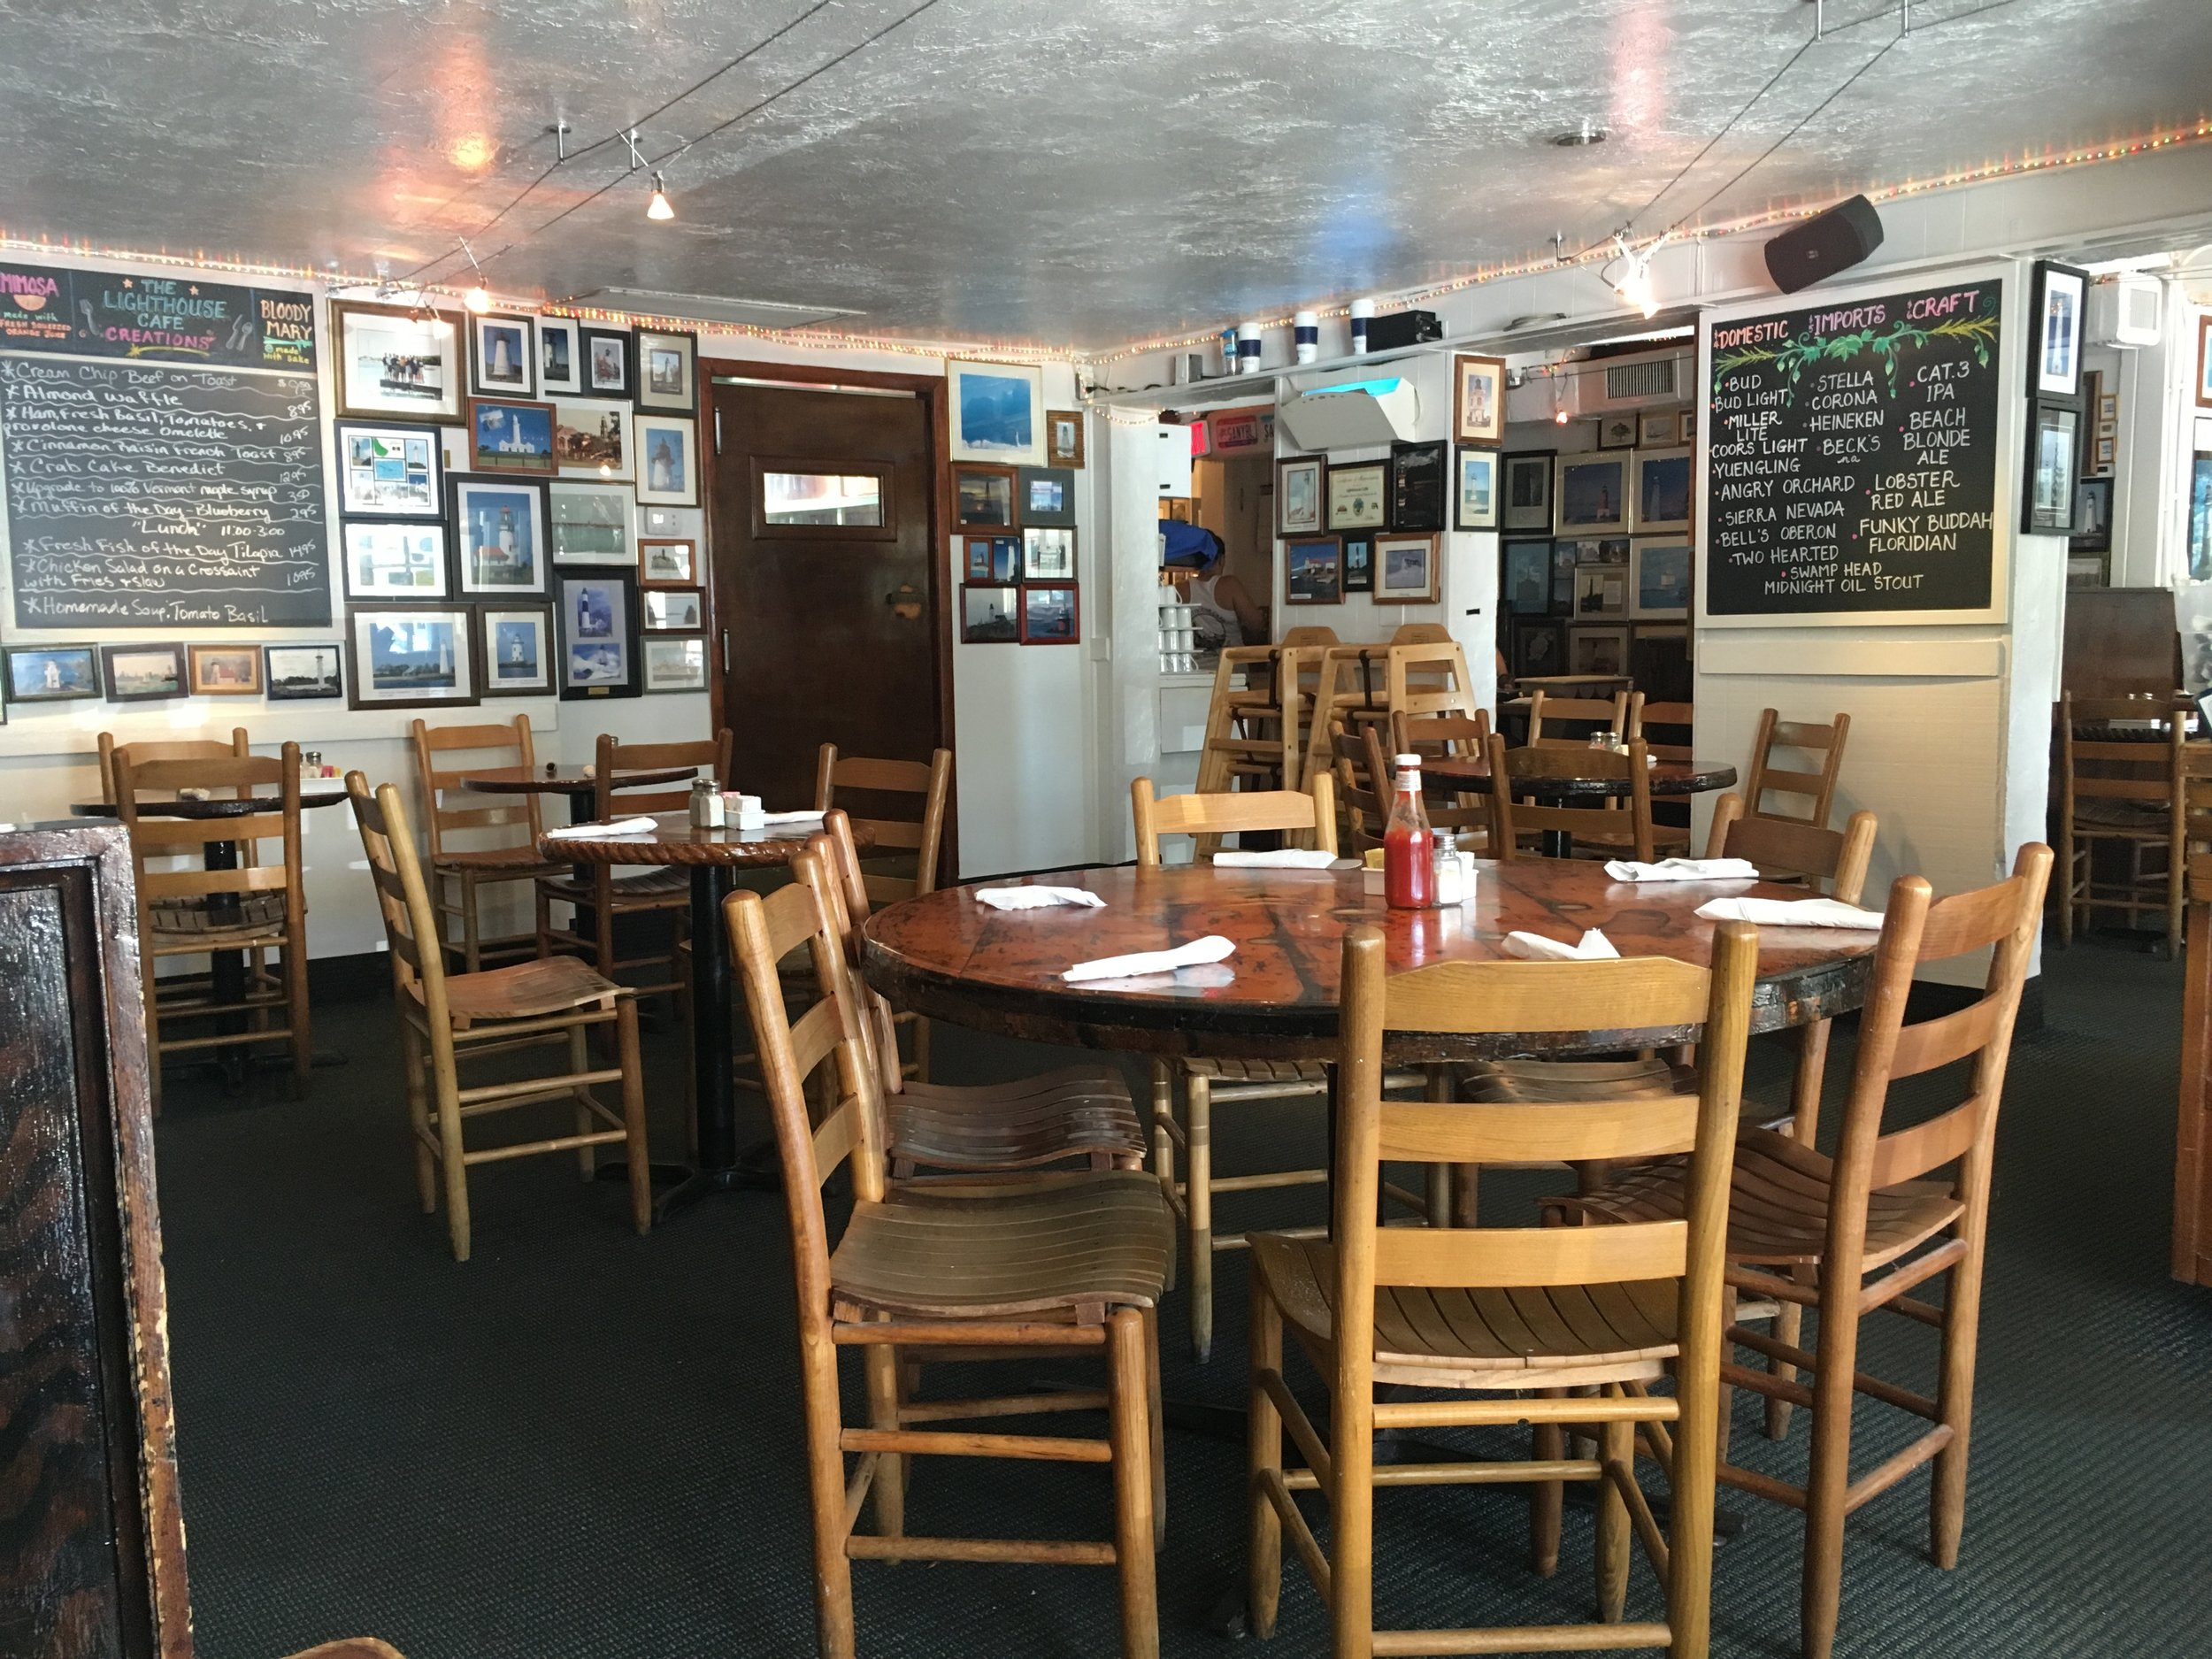 The restaurant is small with about 20 tables of all shapes and sizes.  The walls showcase lighthouses from all over the world that people have sent in.  Very unique.  The staff is very friendly and accommodating.